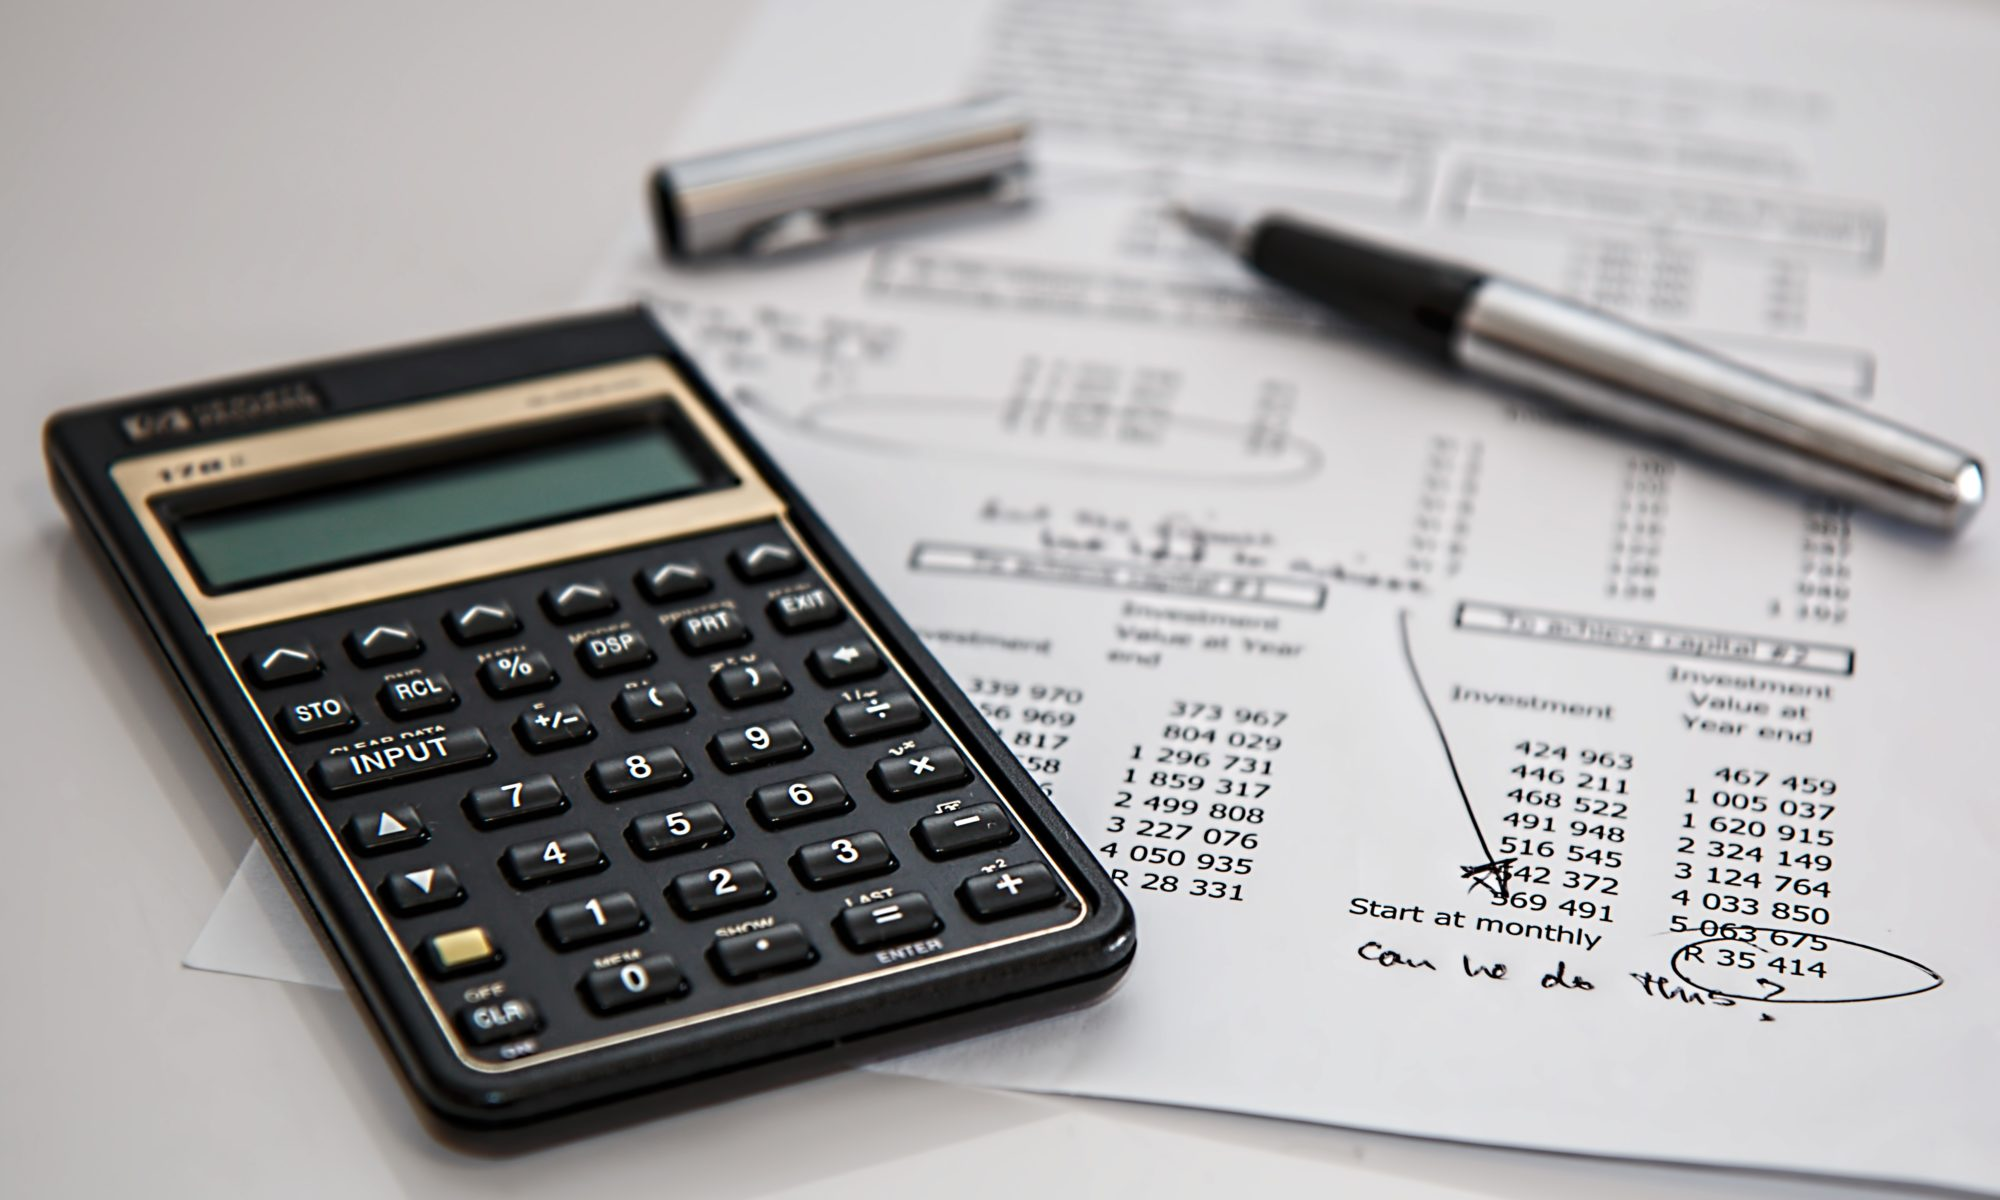 Calculating budget and expenses